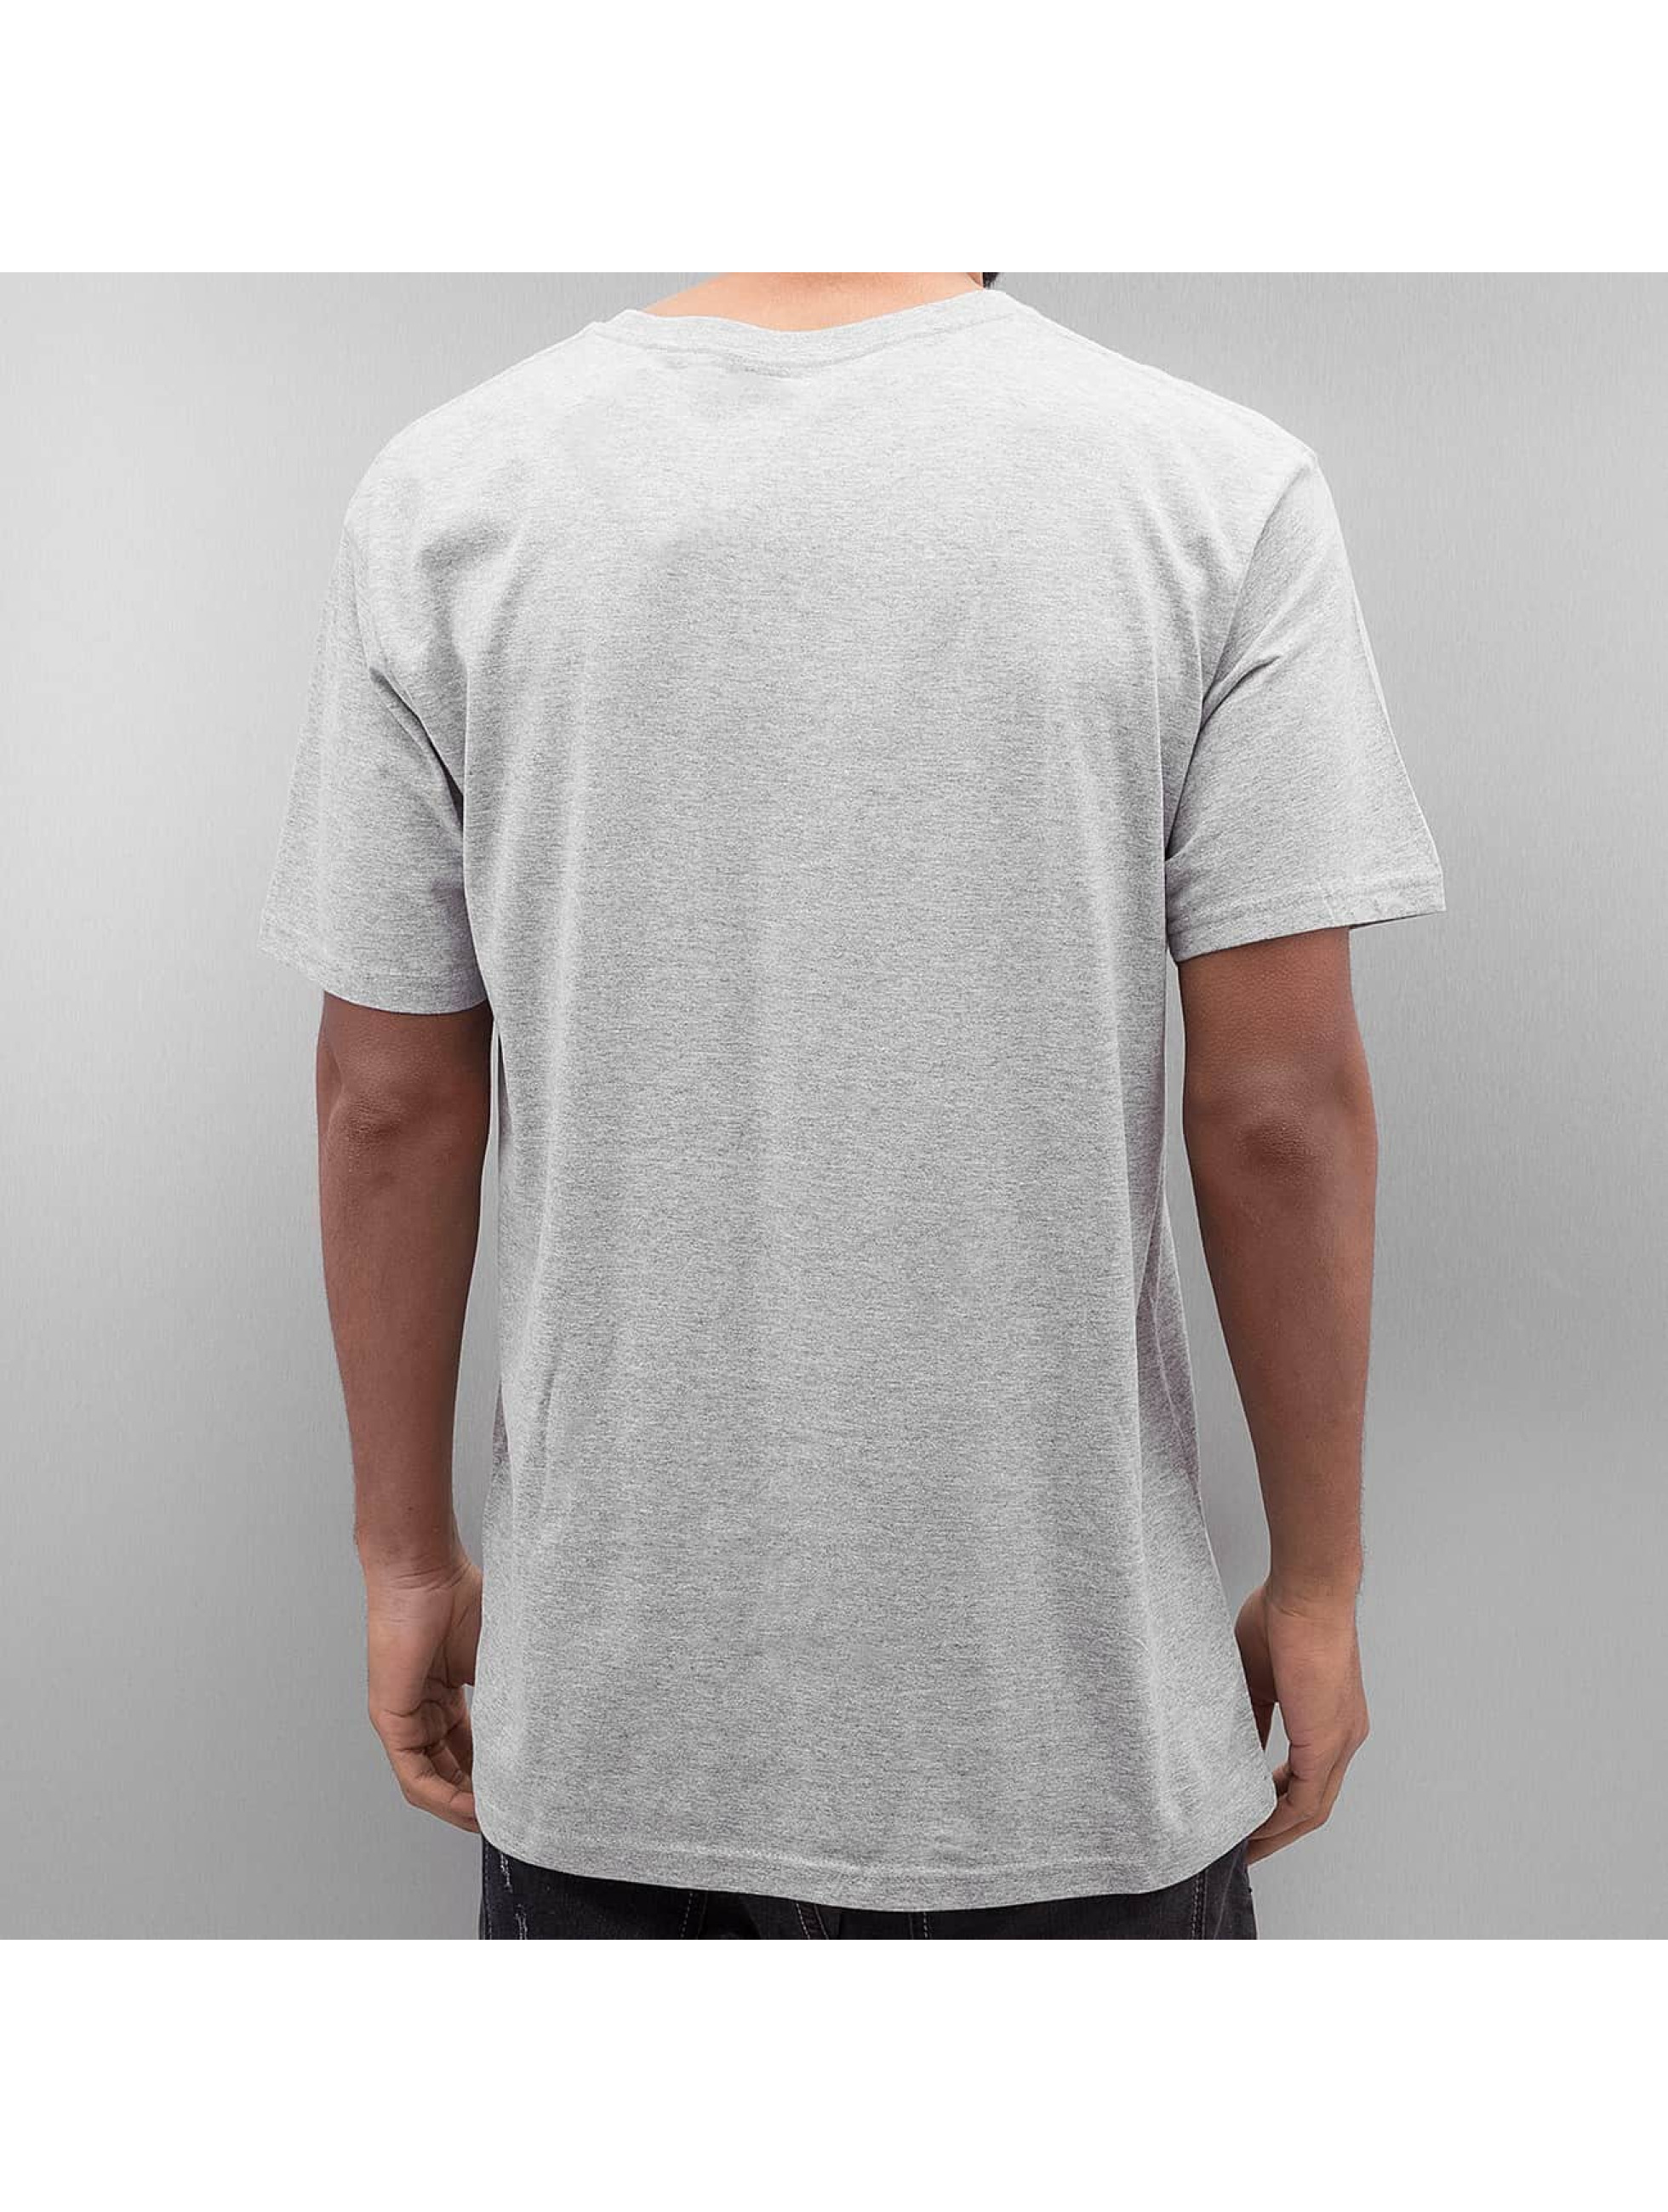 Quiksilver T-Shirt Everyday MW Classic grey